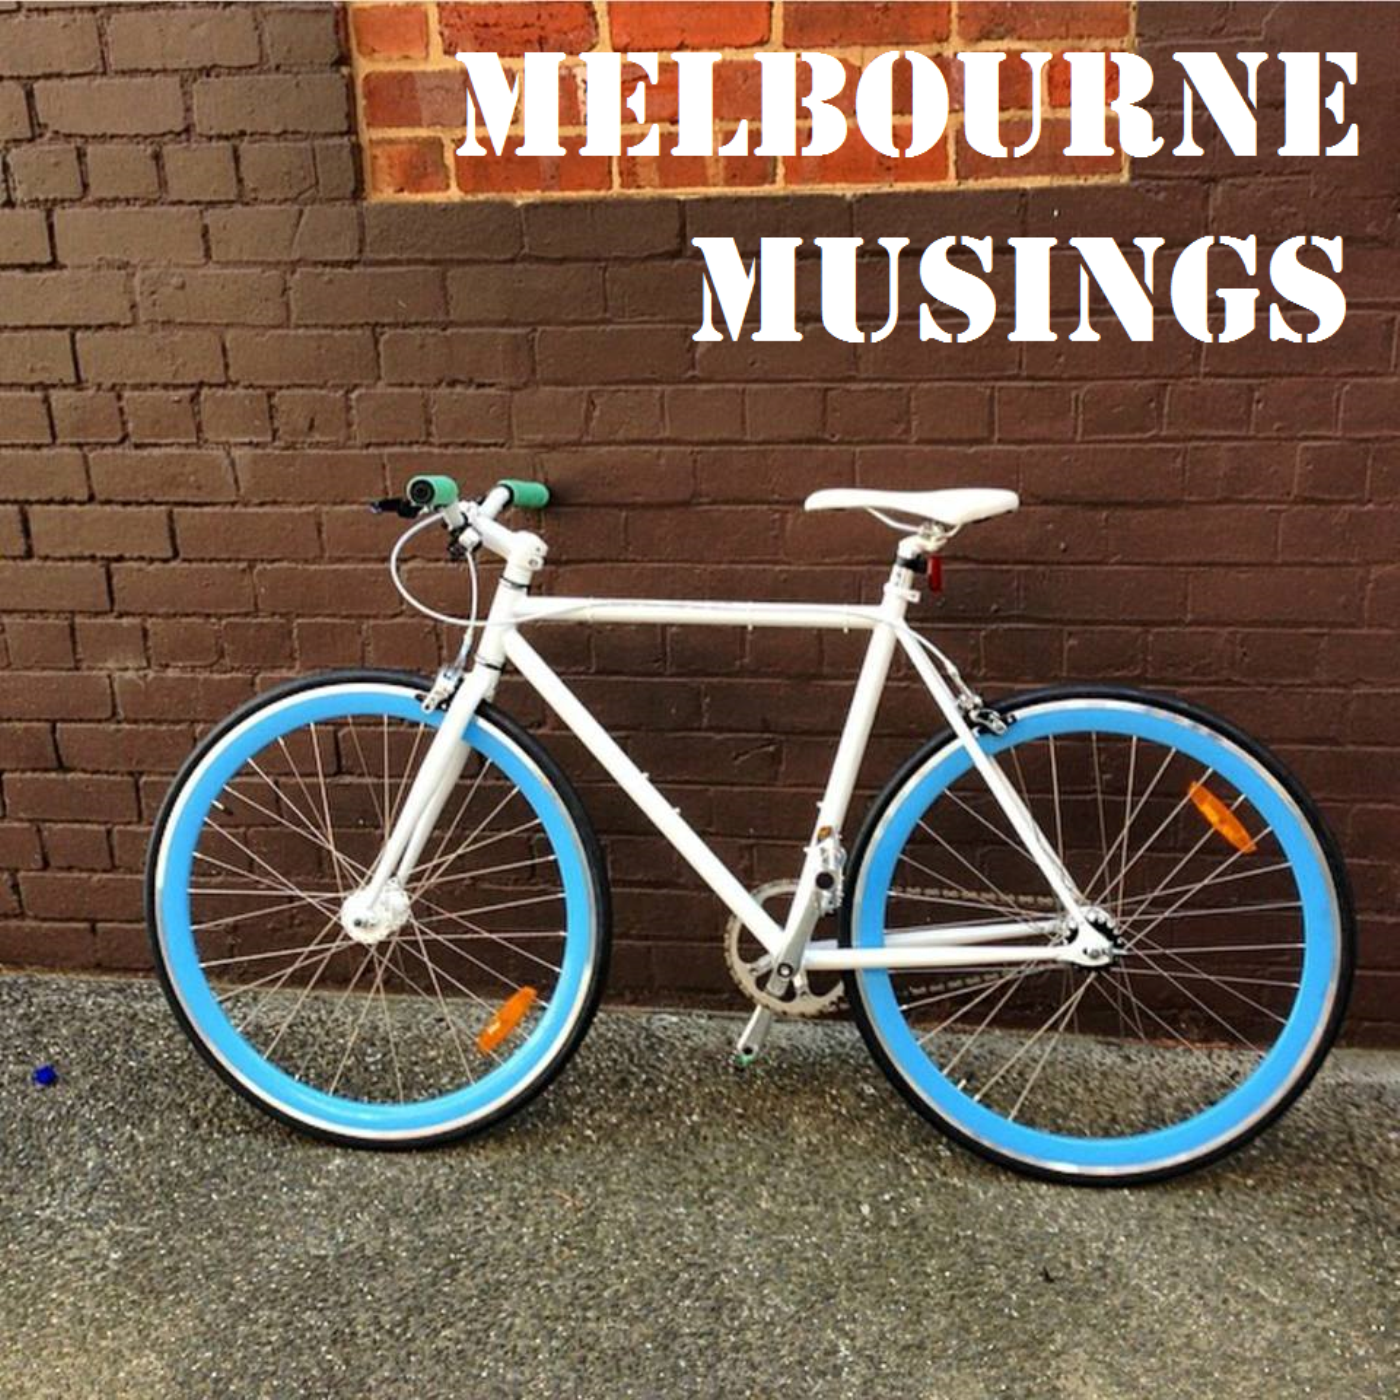 Melbourne Musings Episode 78 show art